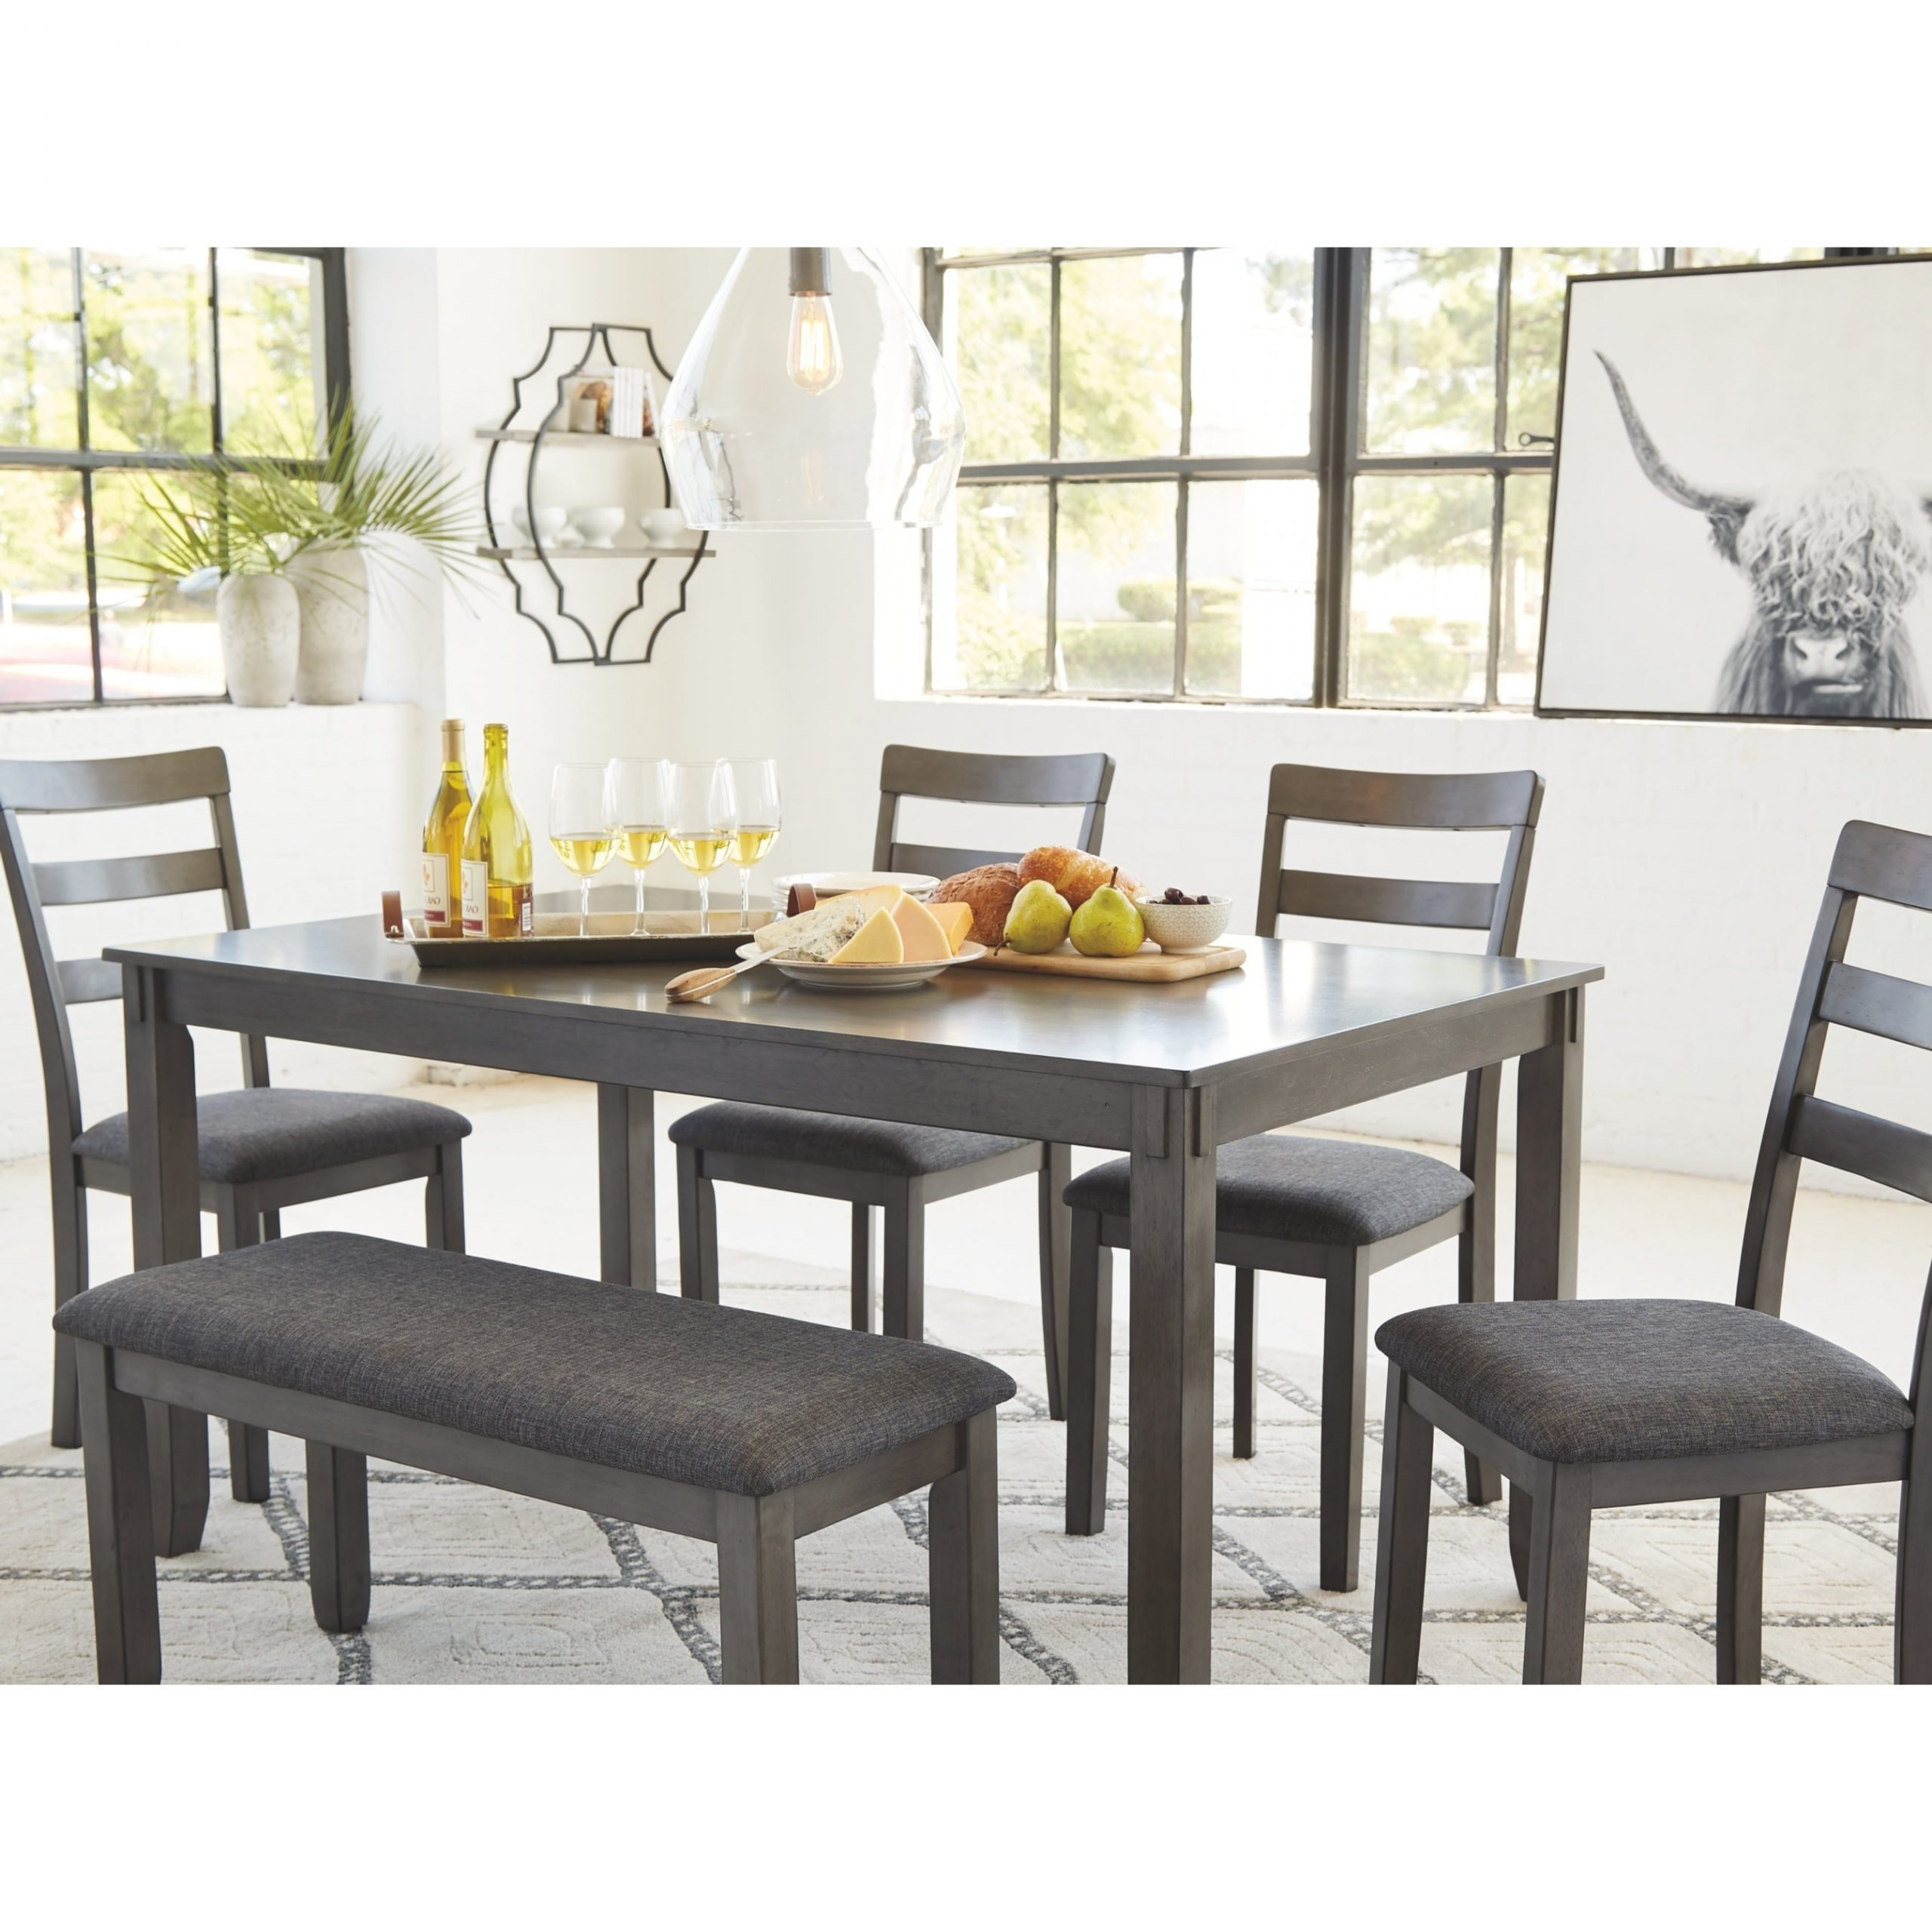 2019 Bridson Rectangular Dining Room Table Set Of 6 - Gray in Charcoal Transitional 6-Seating Rectangular Dining Tables